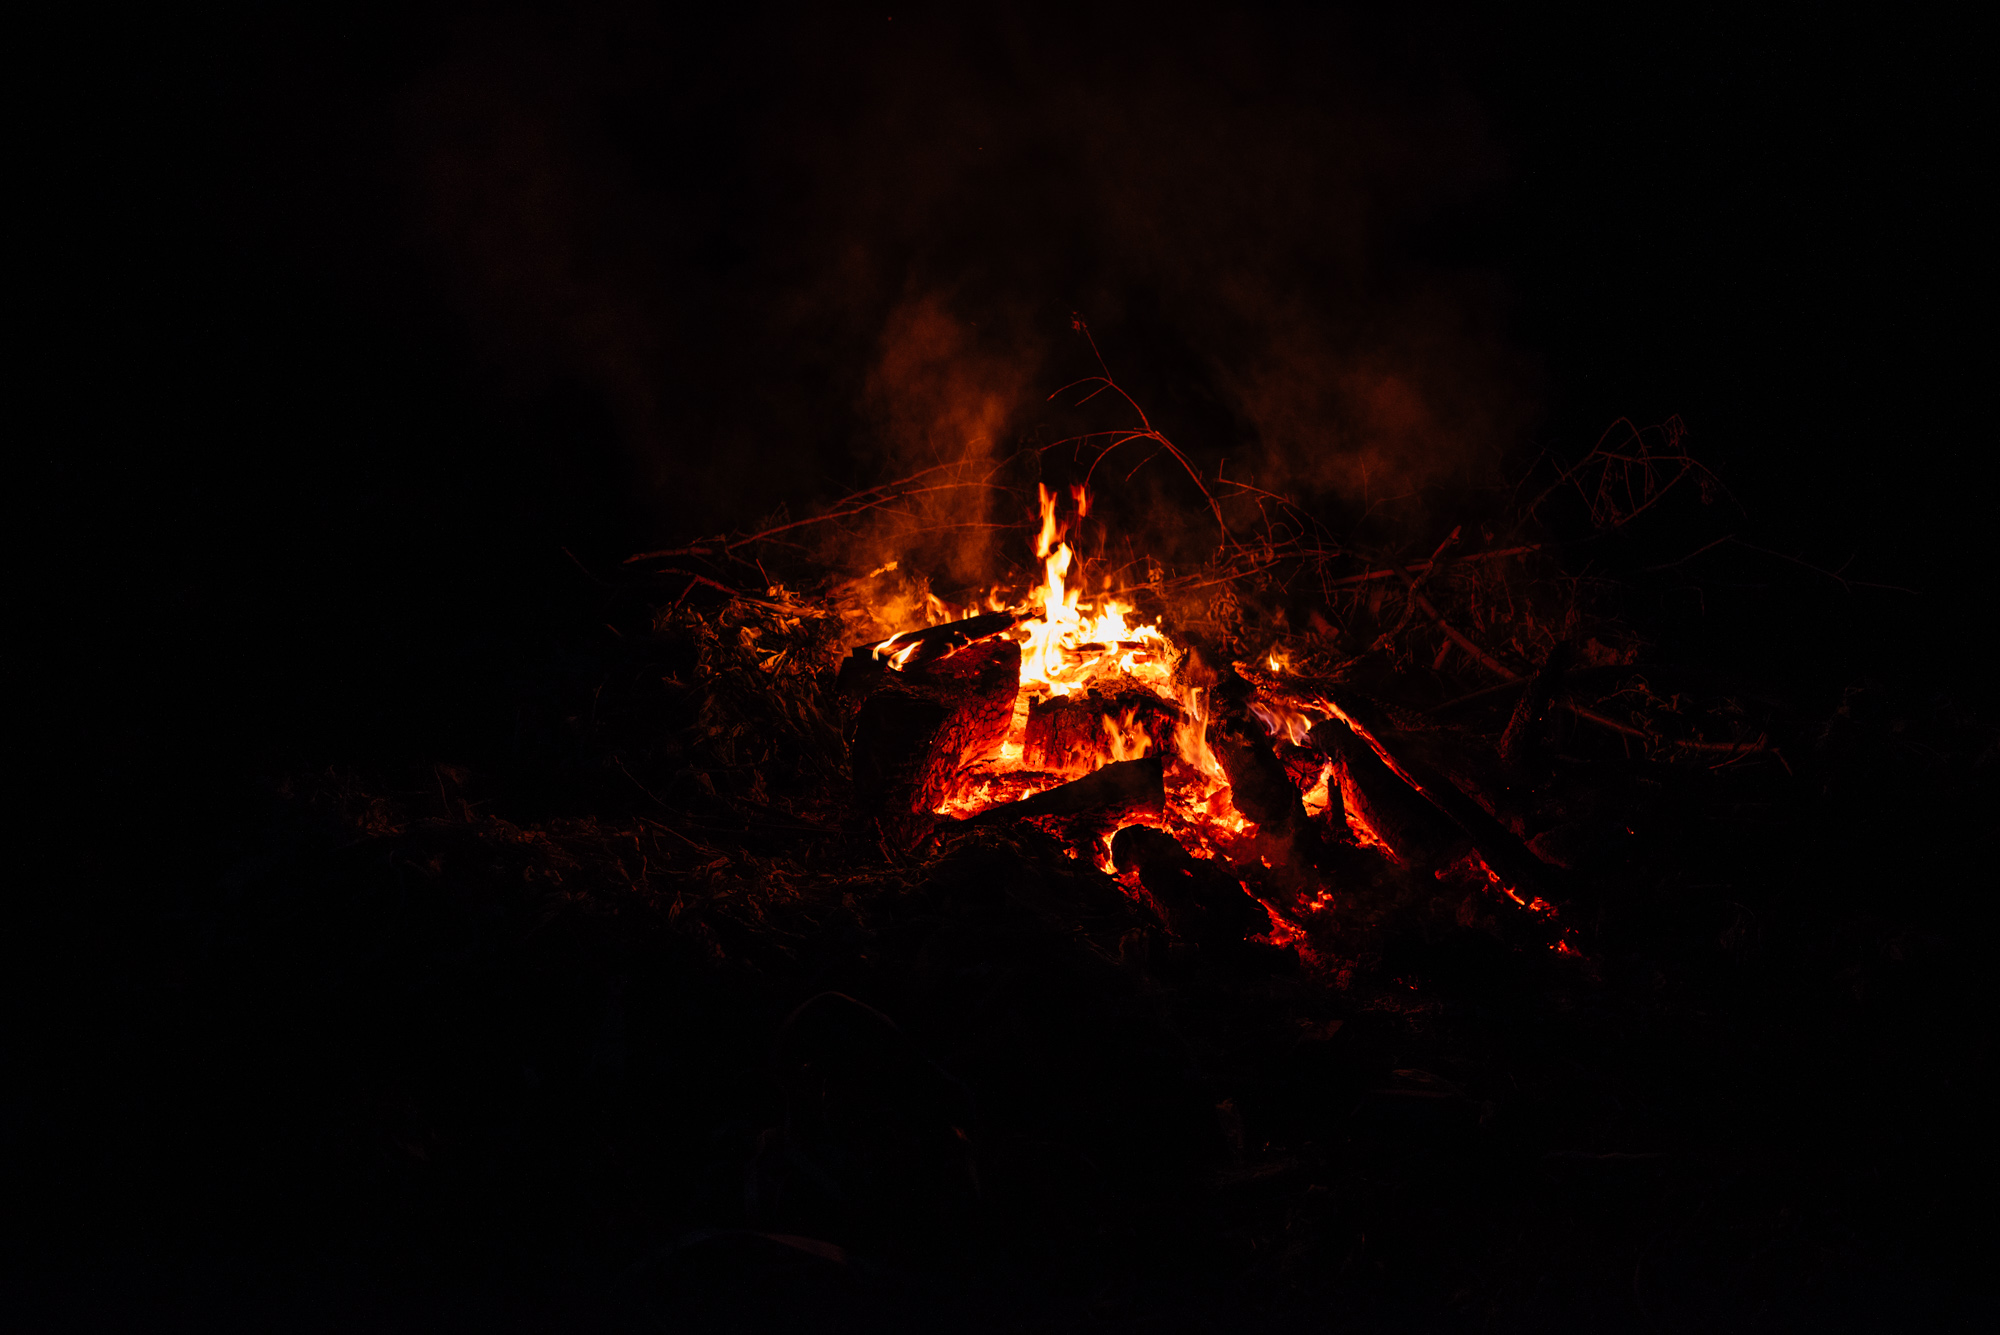 Dimming bonfire